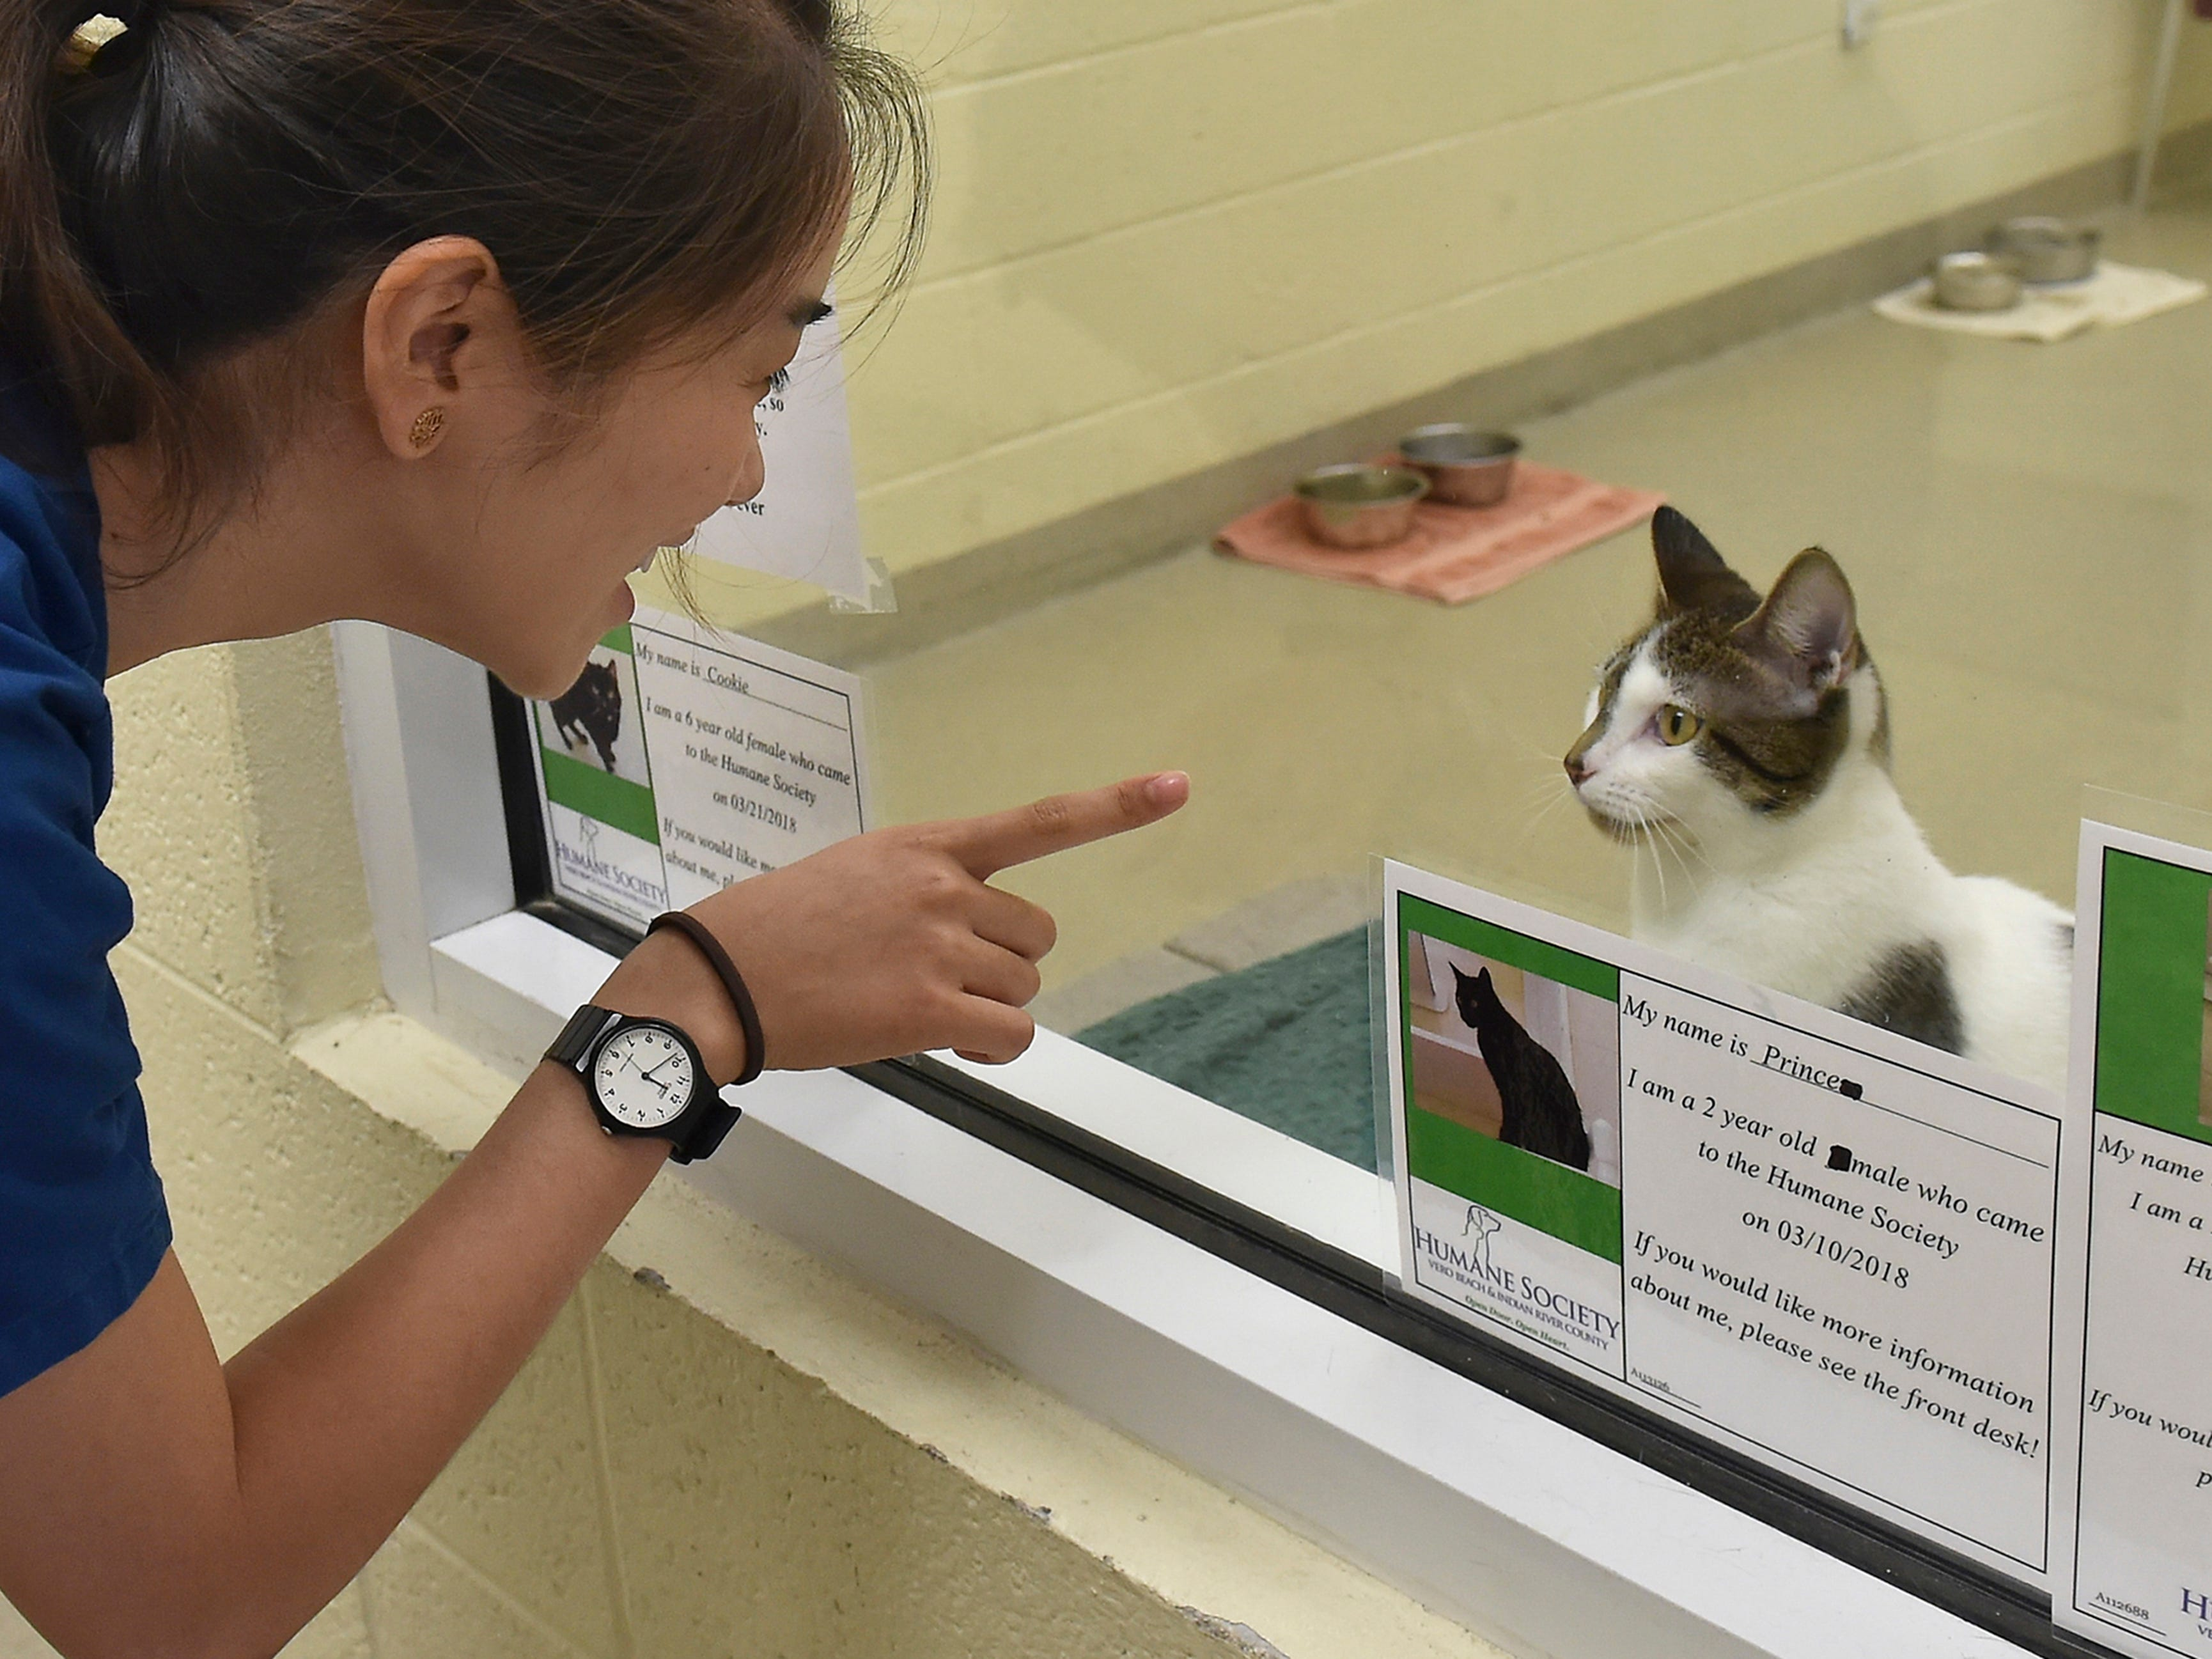 """Veterinarian Cheryl Tan, of Malaysia interacts with Scarlett, an 8-month-old kitten up for adoption inside cat room 2 on Wednesday, May 9, 2018, at the Humane Society of Vero Beach and Indian River County. """"It's a very good experience, probably once in a lifetime for me,"""" Tan said about her week-long internship at the humane society."""